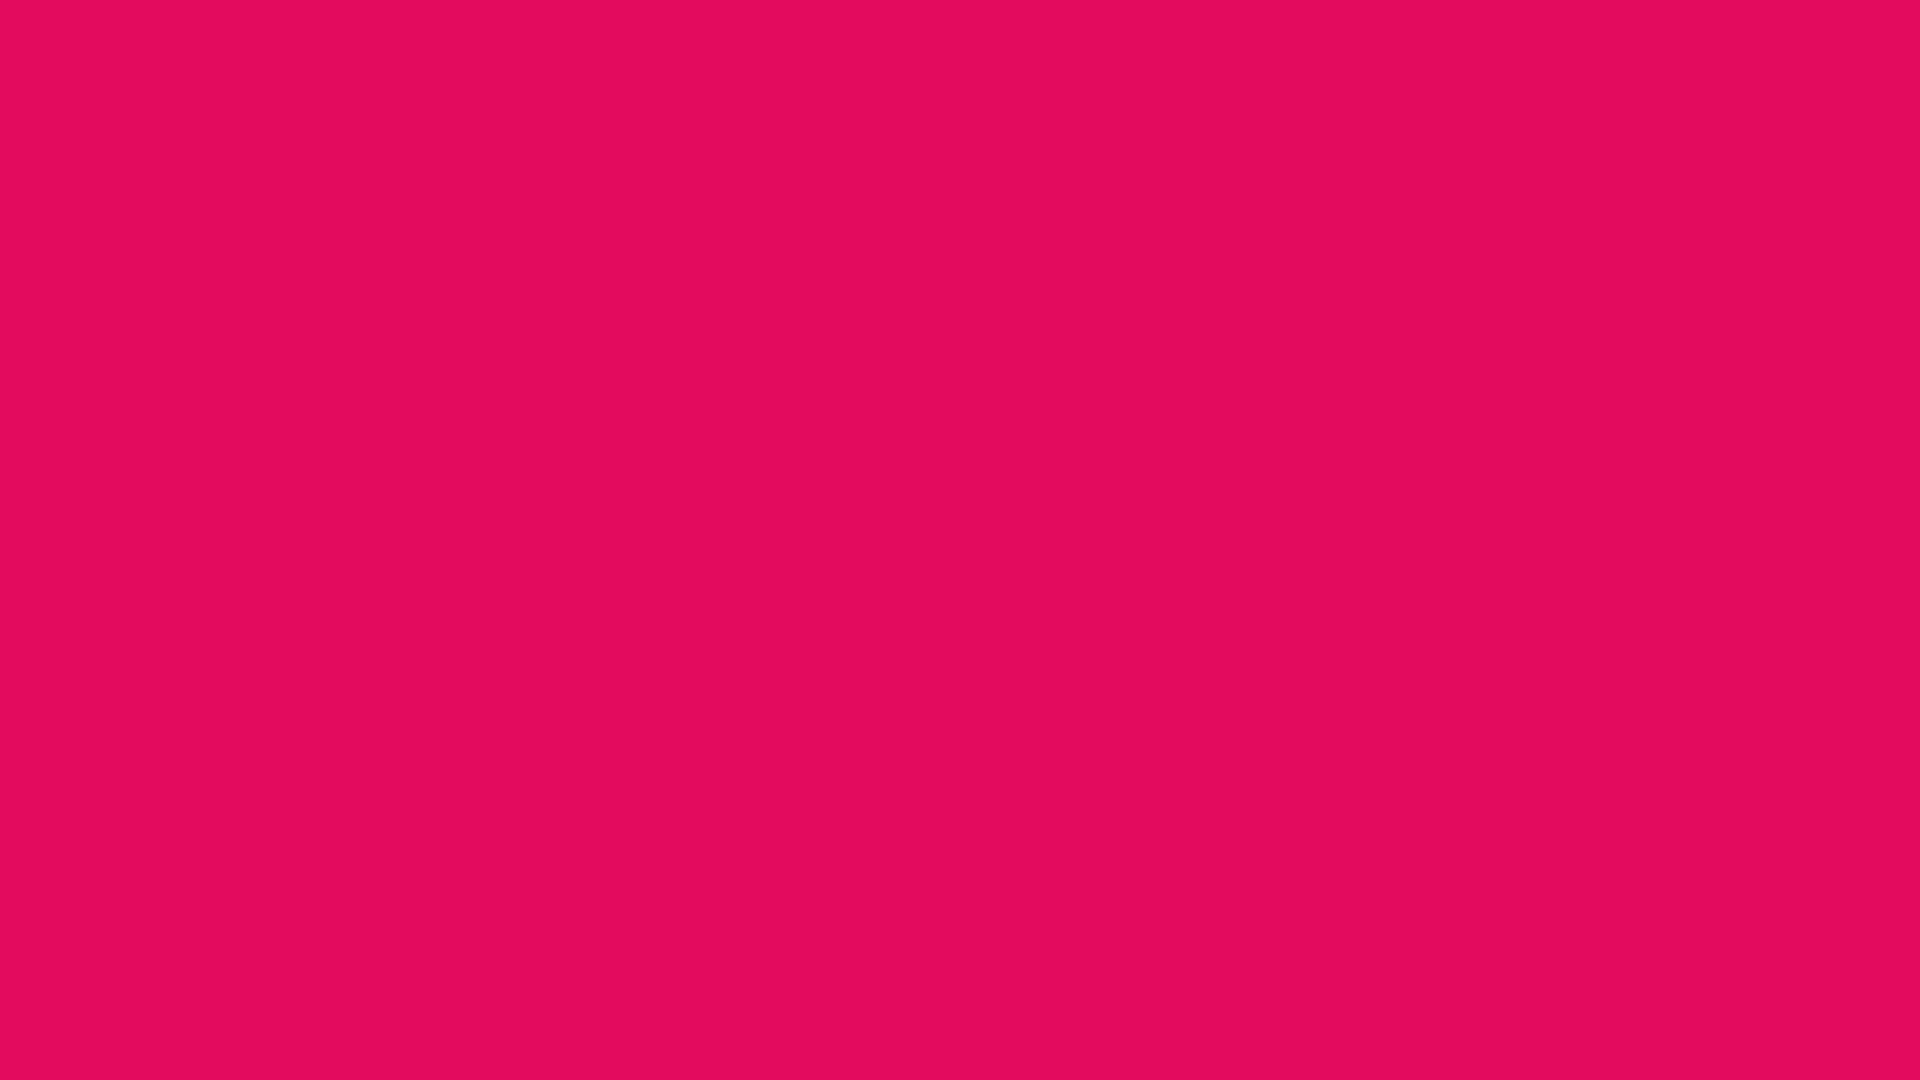 1920x1080 Raspberry Solid Color Background